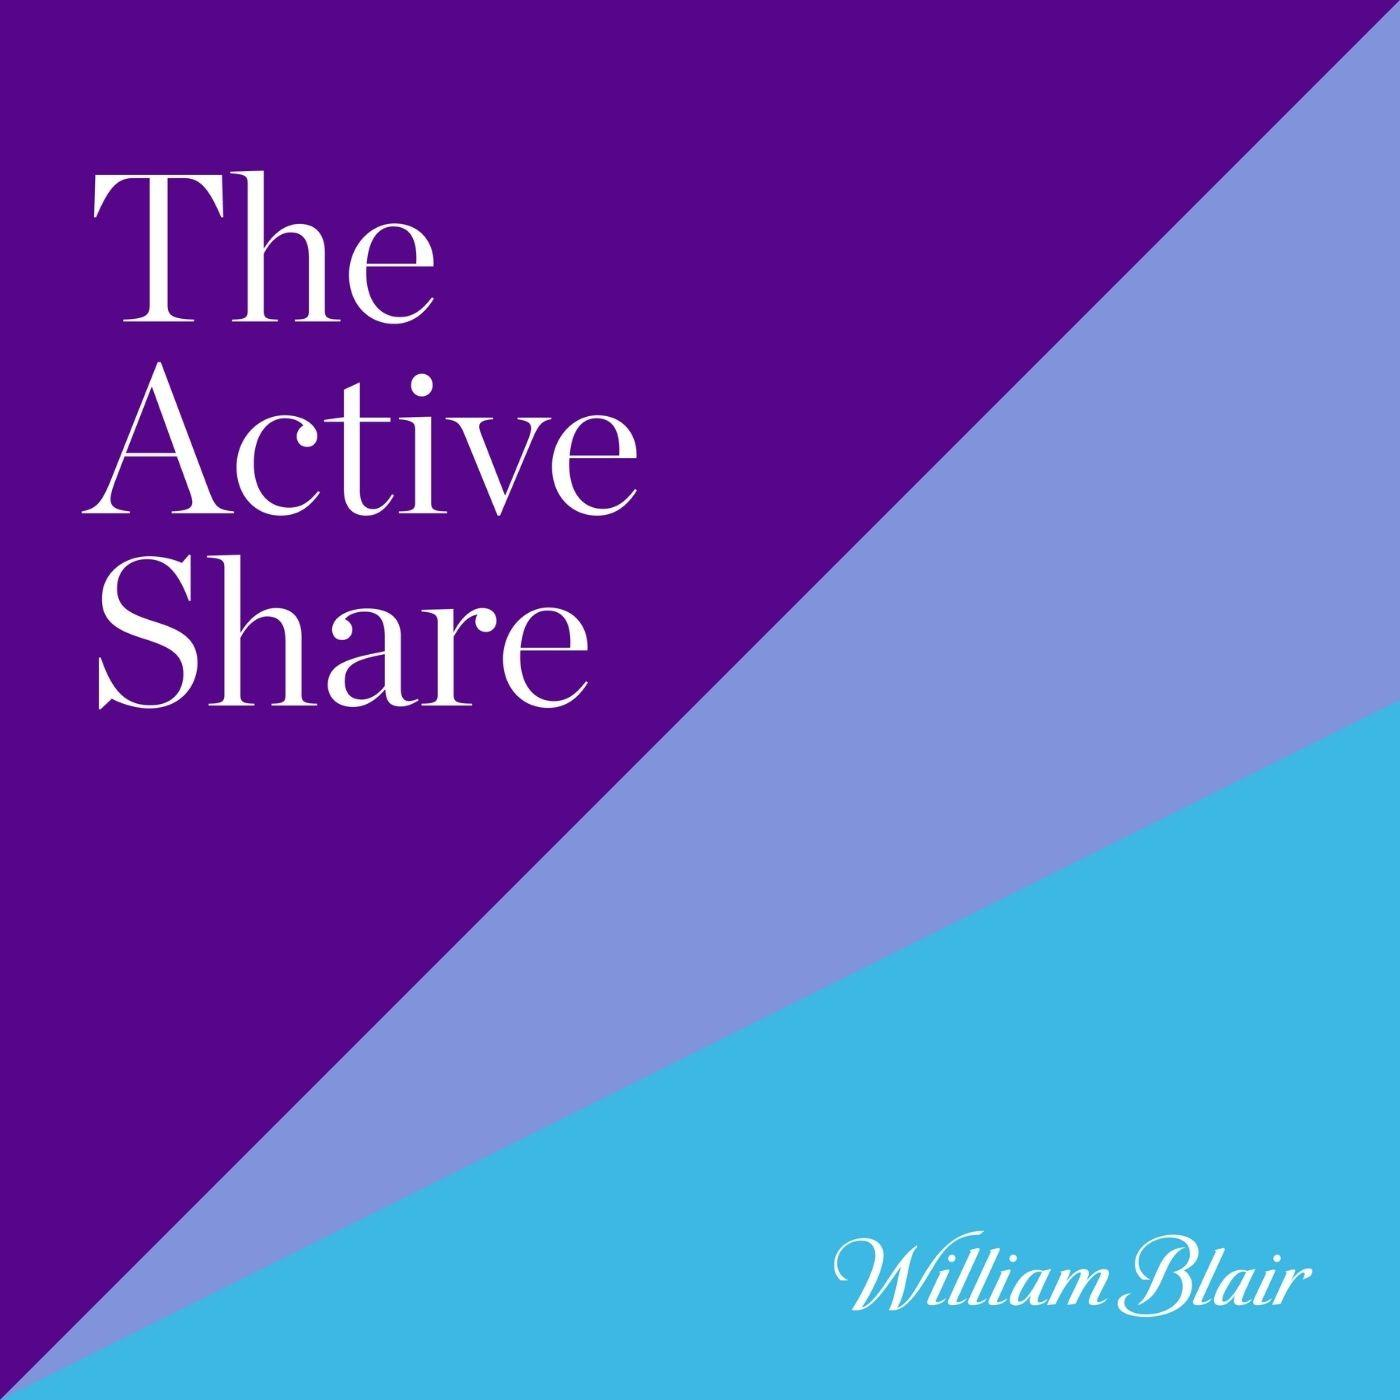 The Active Share, William Blair logo